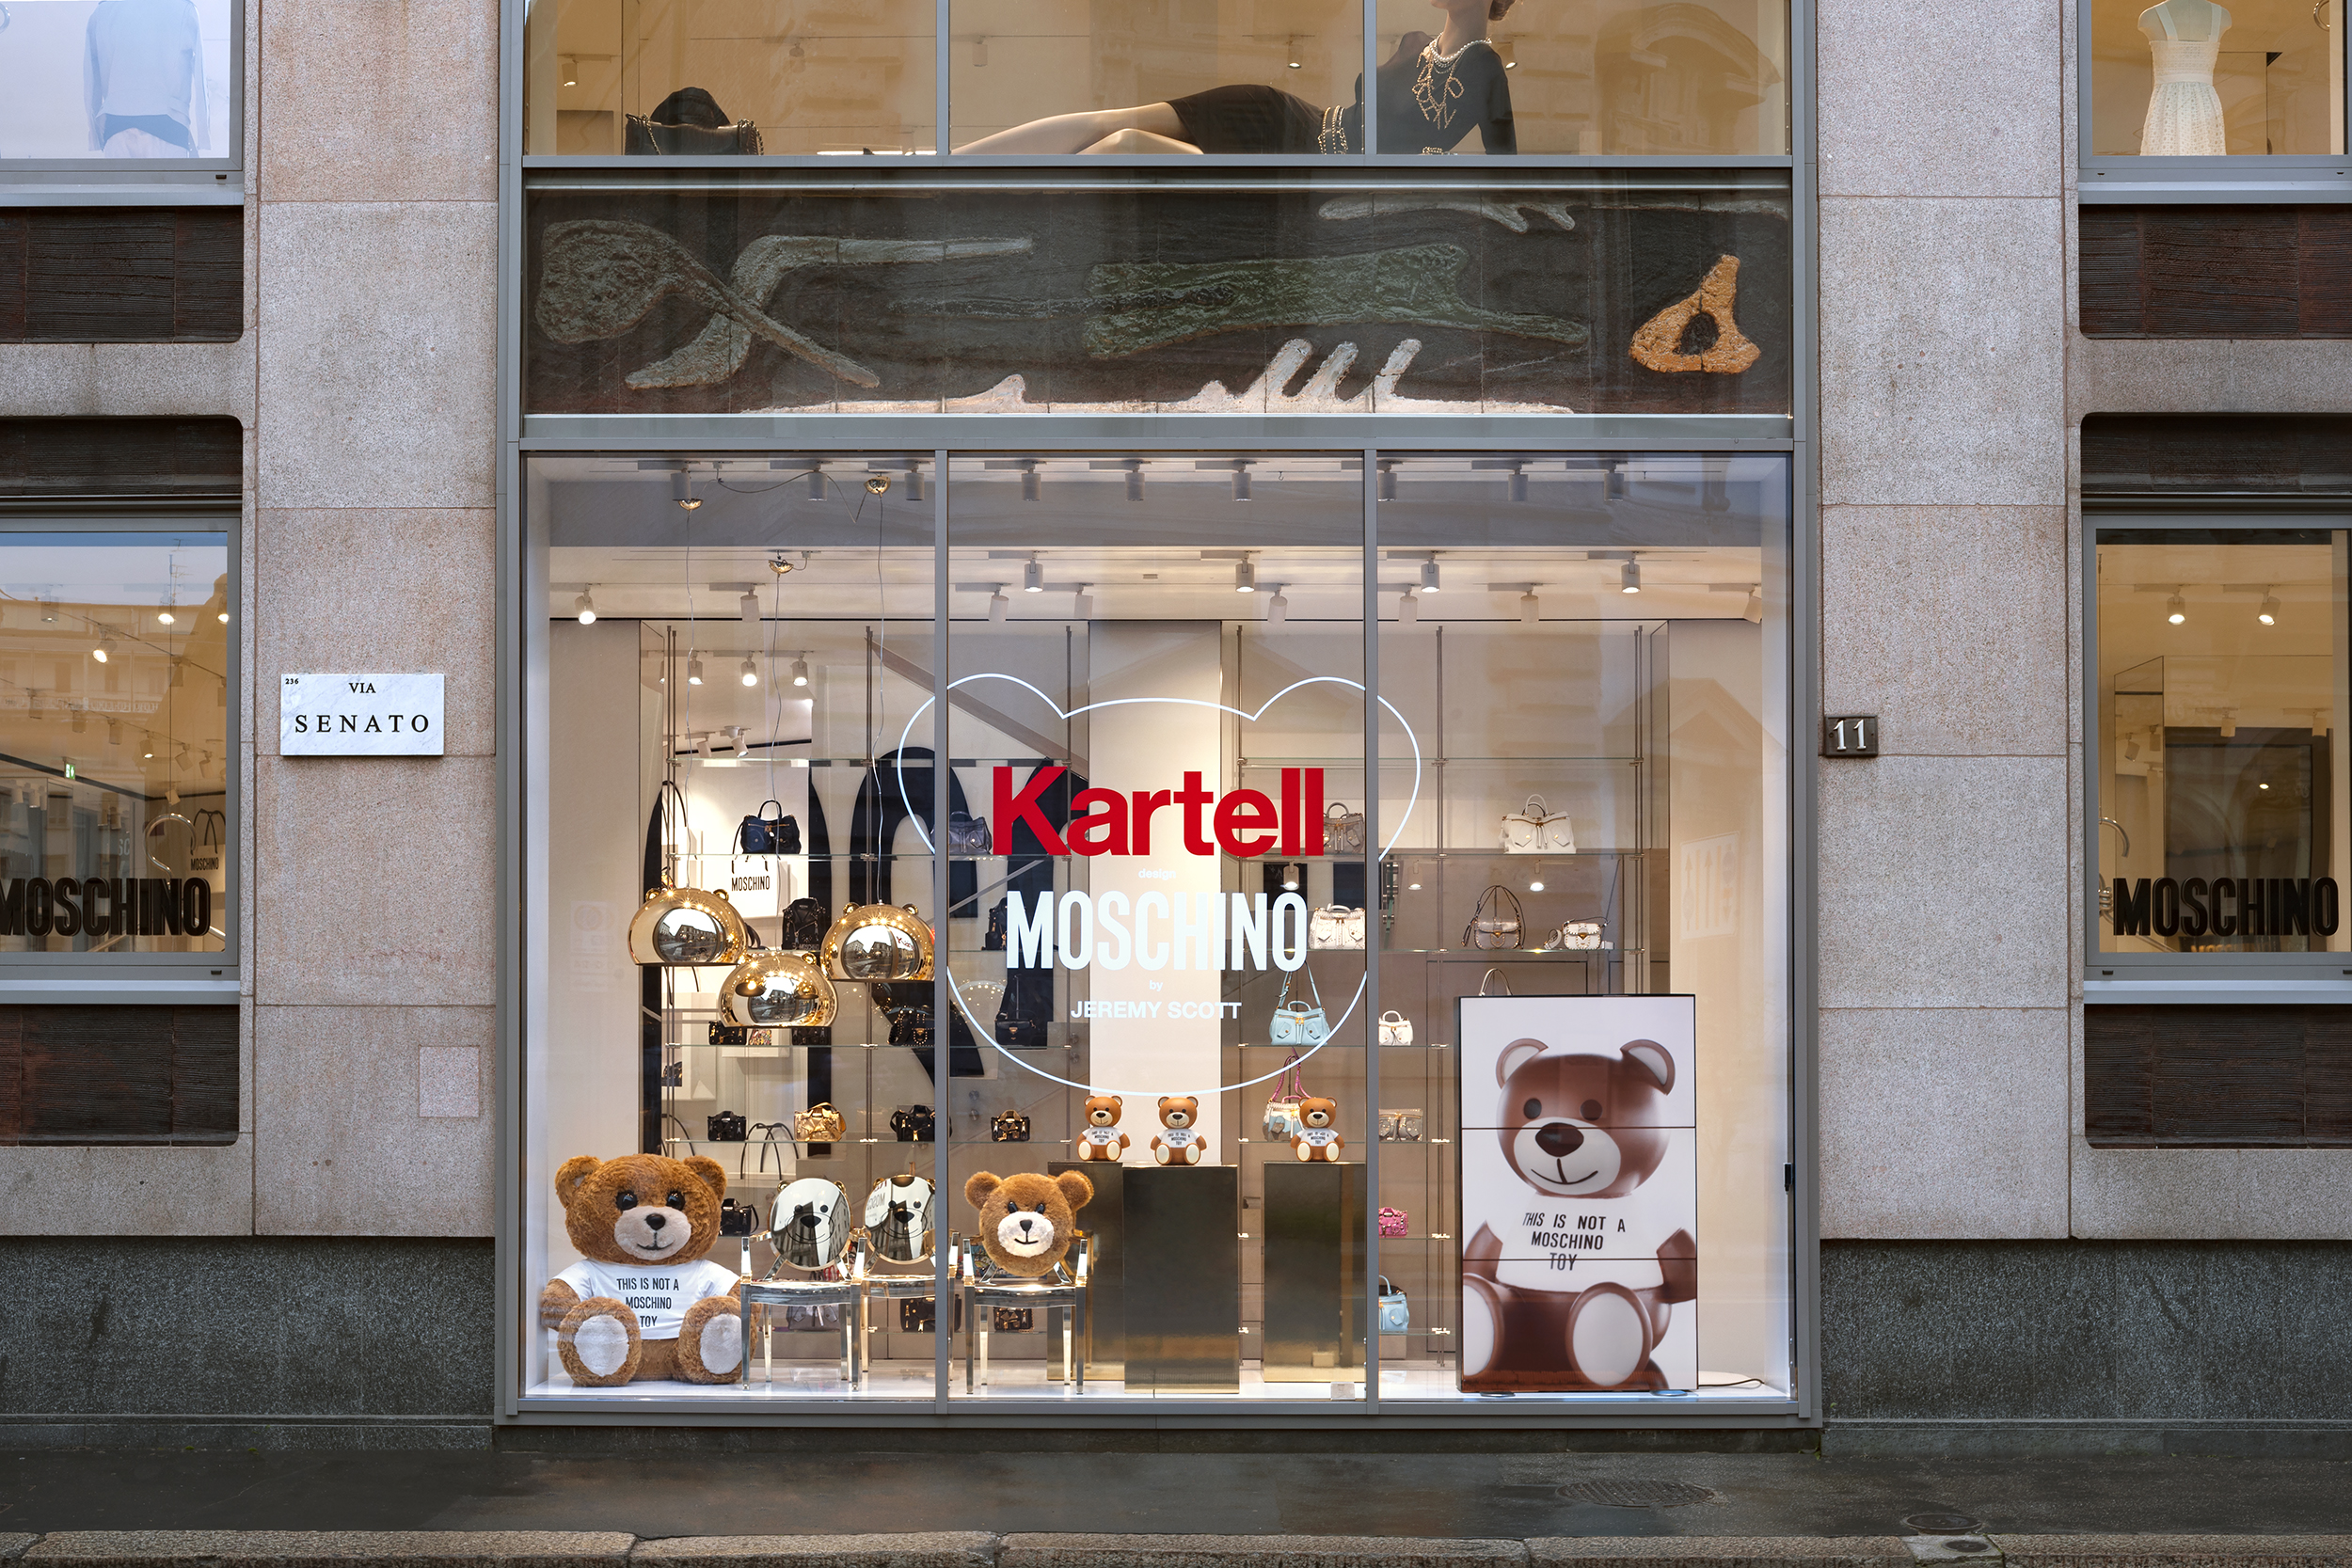 Moschino loves Kartell